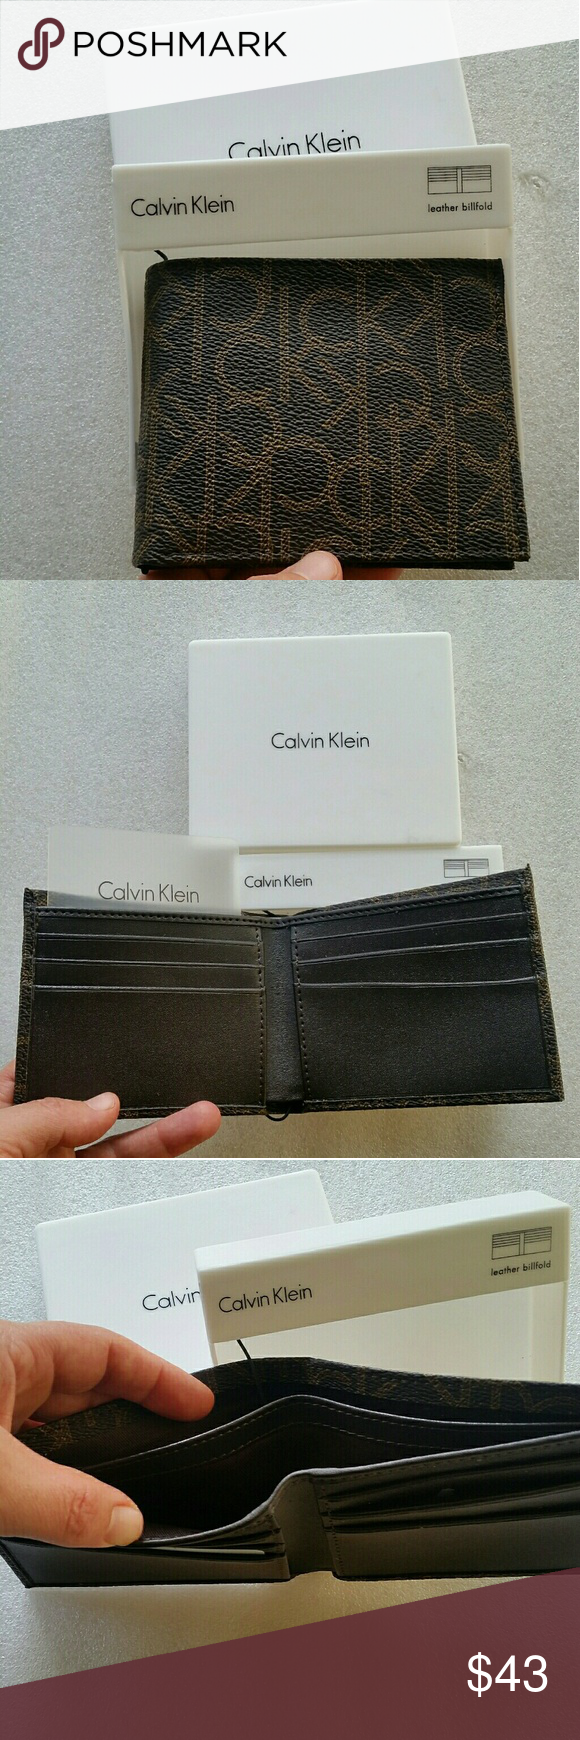 8a8f00958ad NWT authentic Calvin Klein men s wallet Brand new in ibox Great for gift Calvin  Klein Bags Wallets